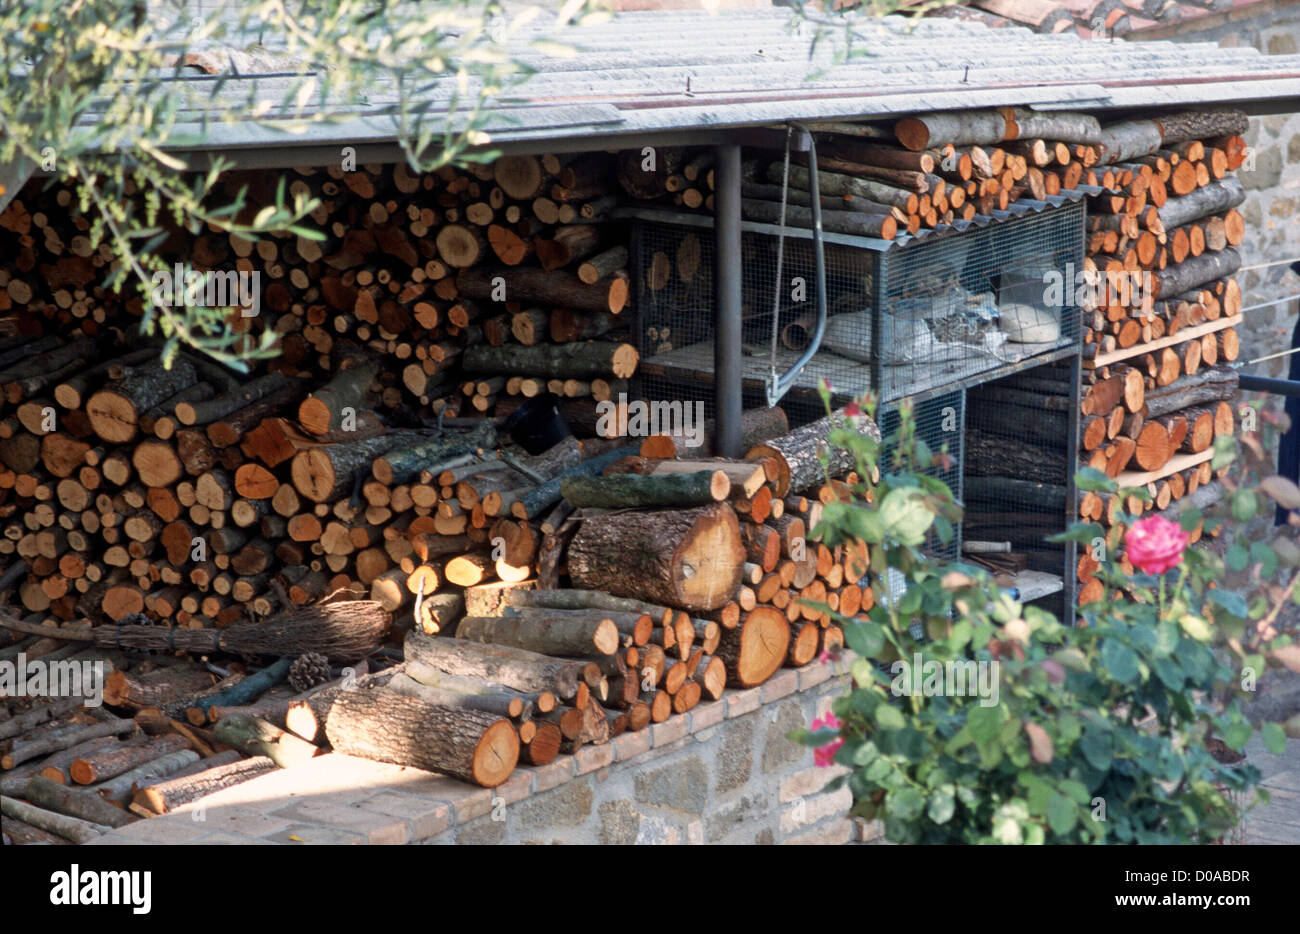 ITALY MONTALCINO- LOGS NEATLY STACKED AS WINTER FUEL WILL ENSURE WARM HOME - Stock Image